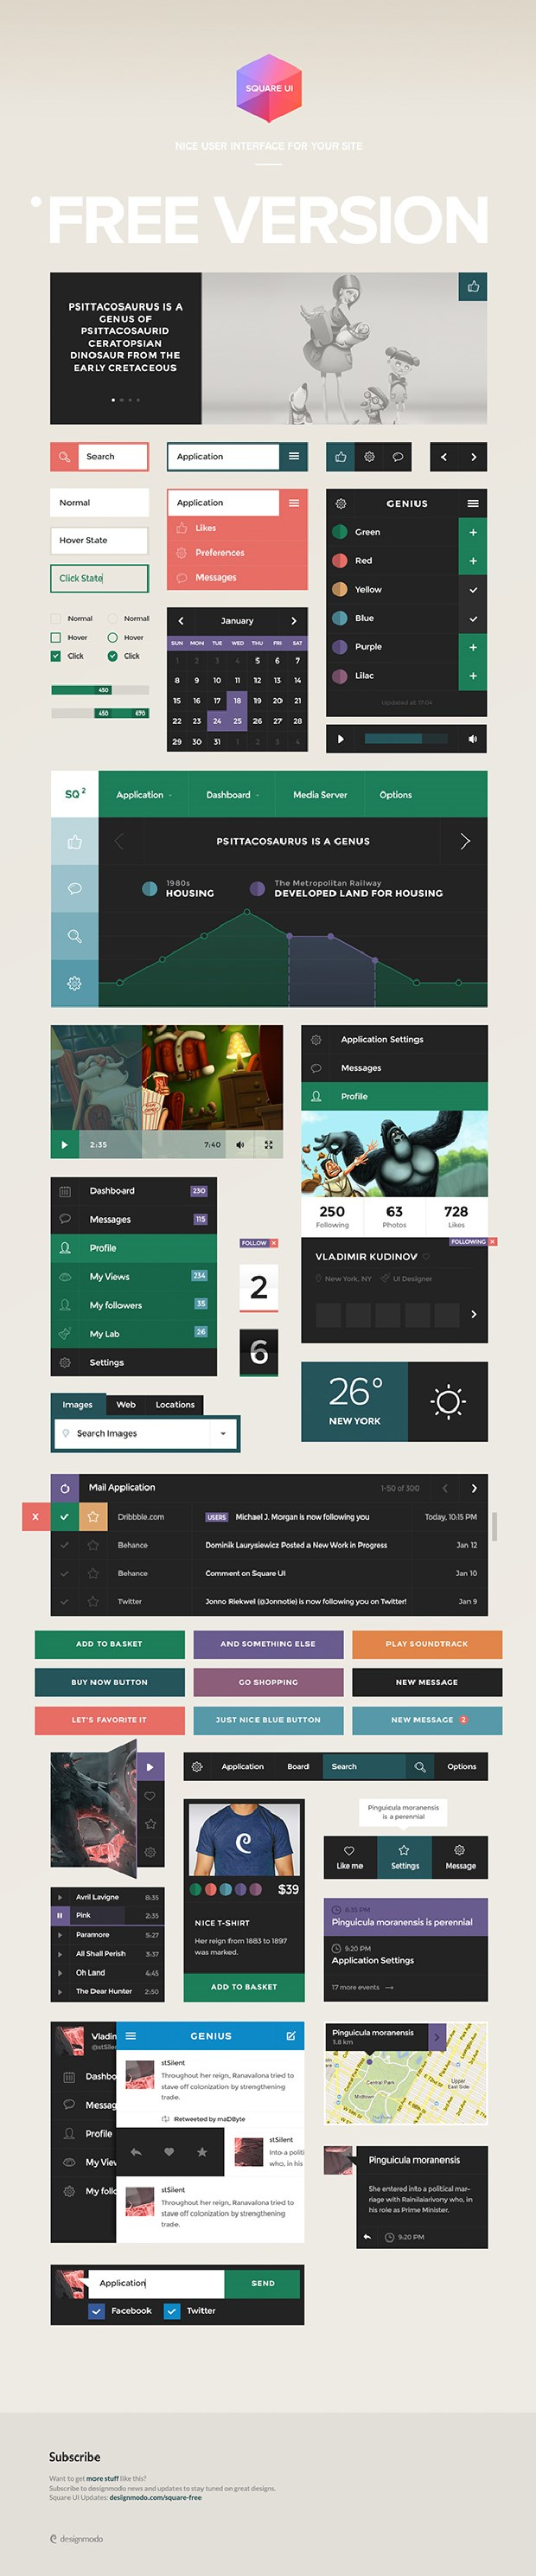 free_ui_kits_for_designers_35